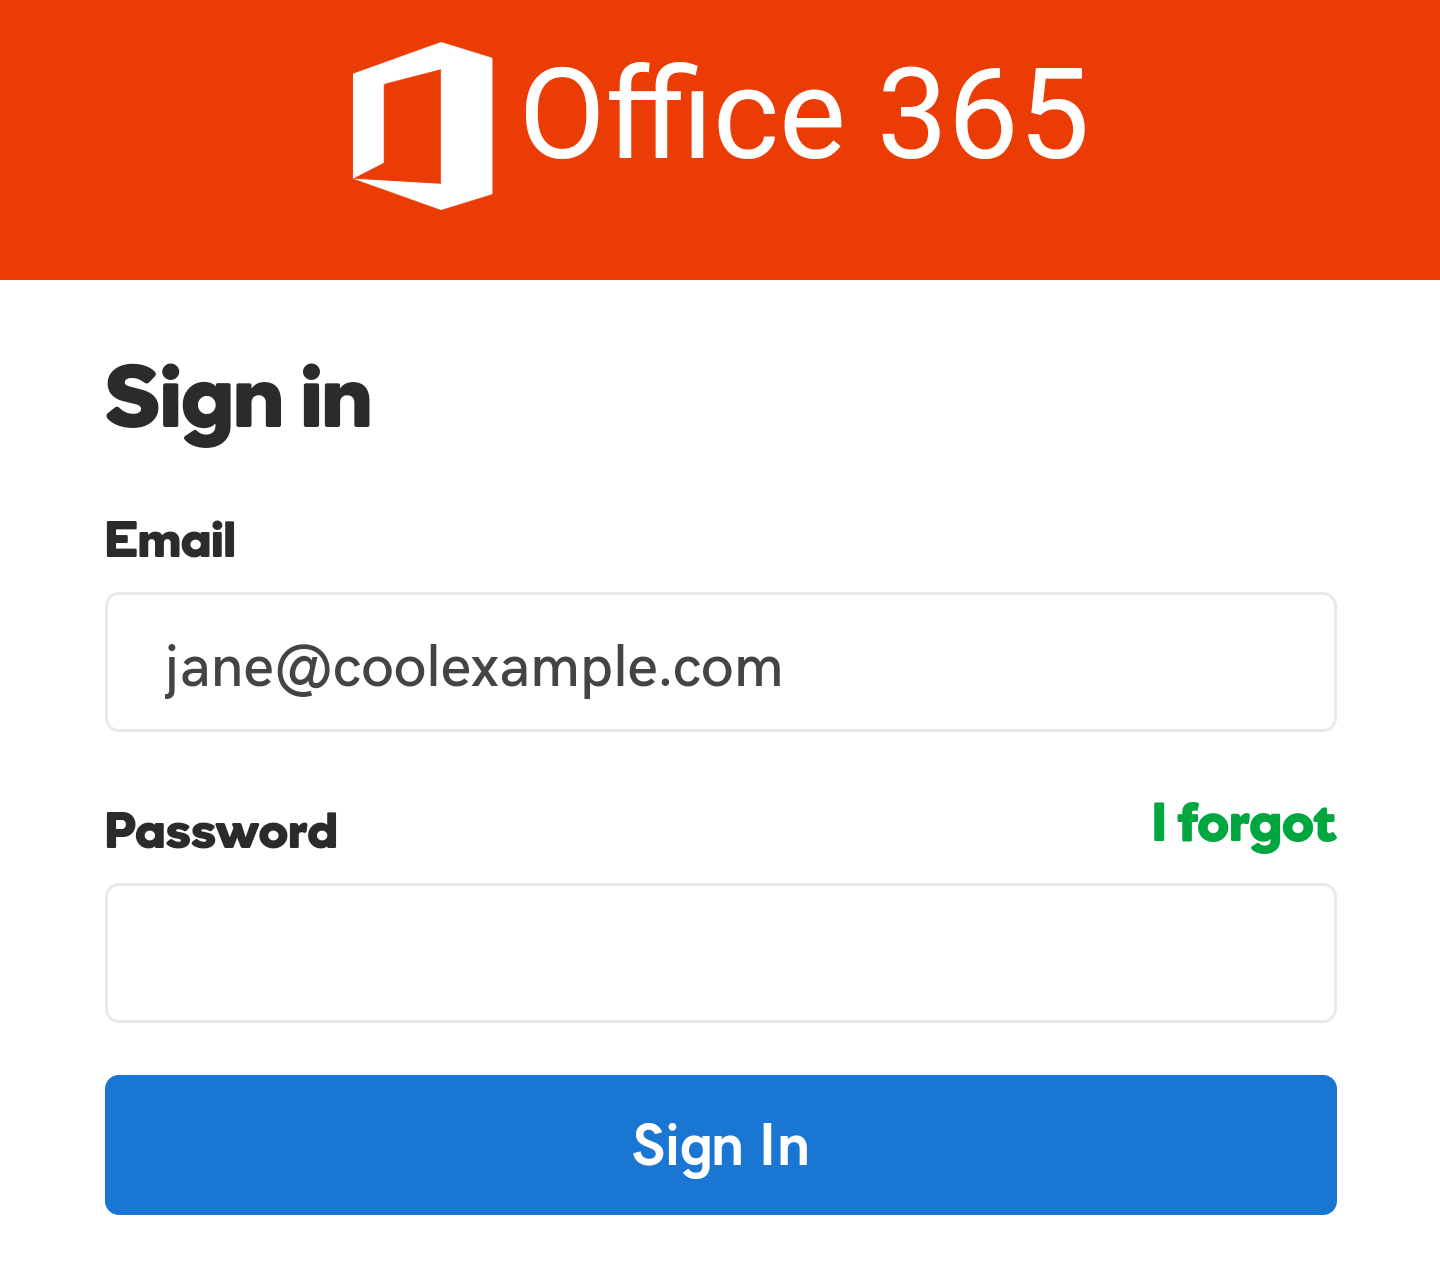 Enter email password and sign in